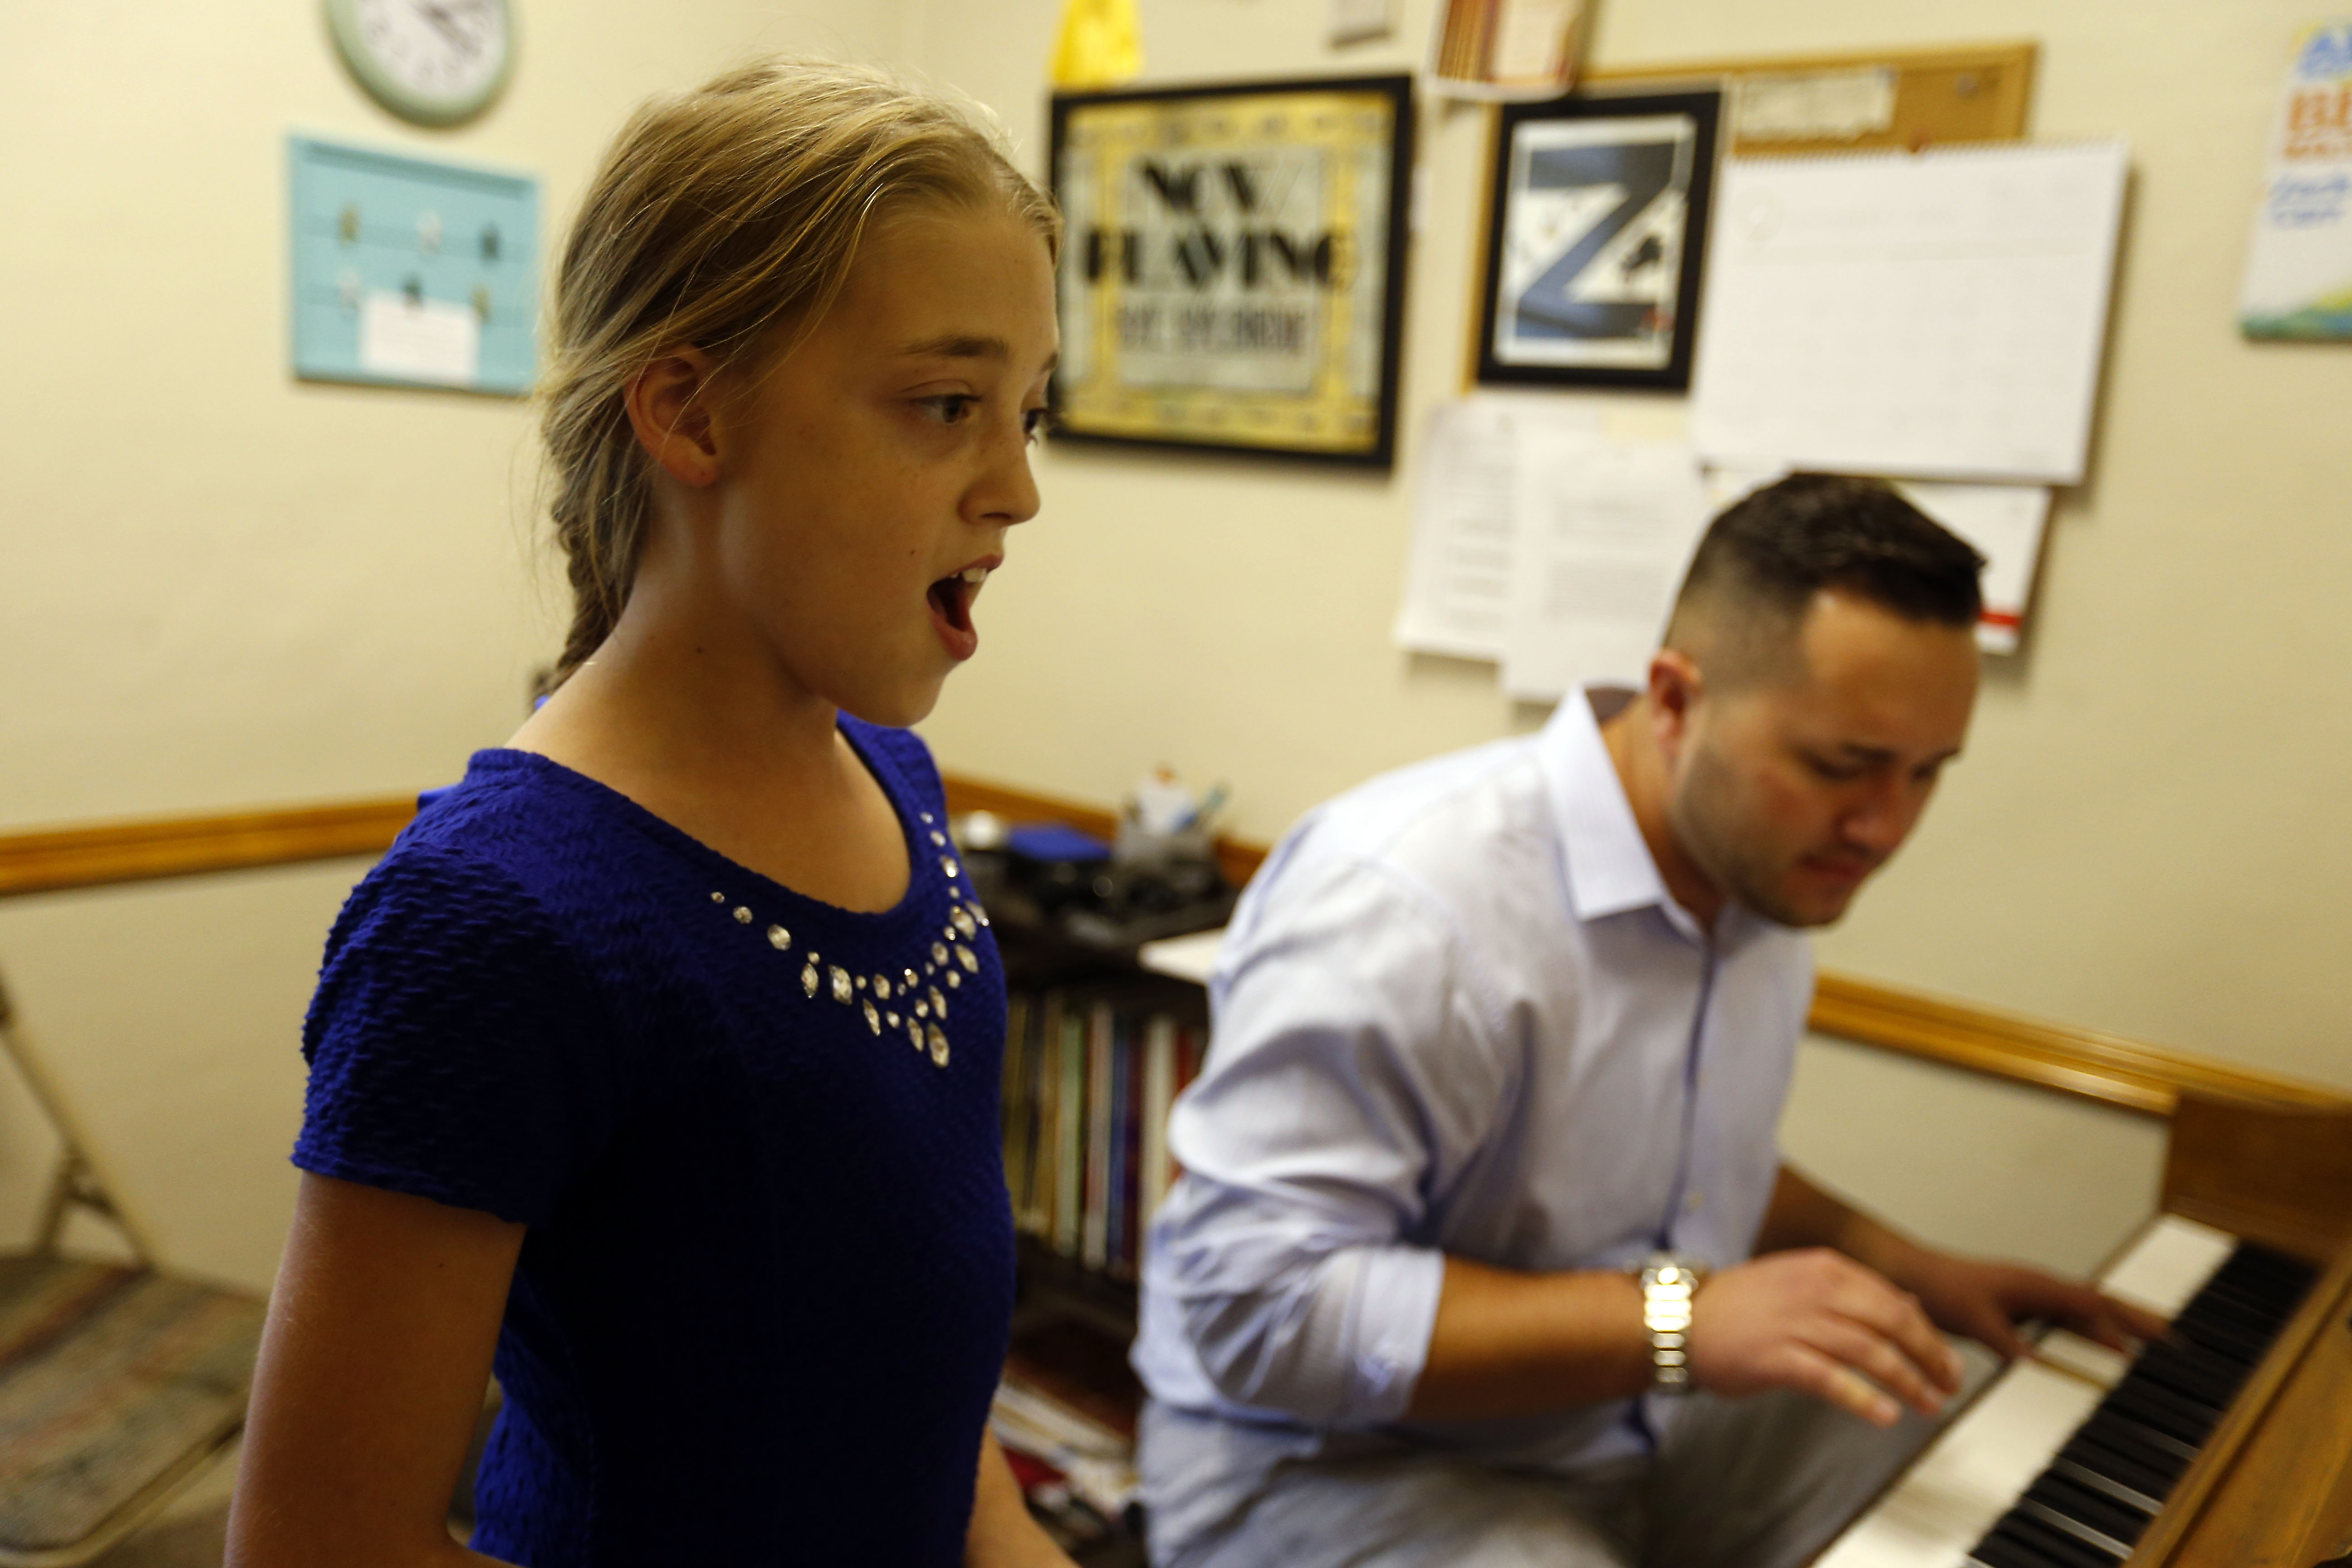 Ally Rose Marella, 11, practices with her vocal instructor, Zack Carr, at Matt's Music Vocal Performance Team in North Tonawanda. Ally Rose also dances and plays piano.